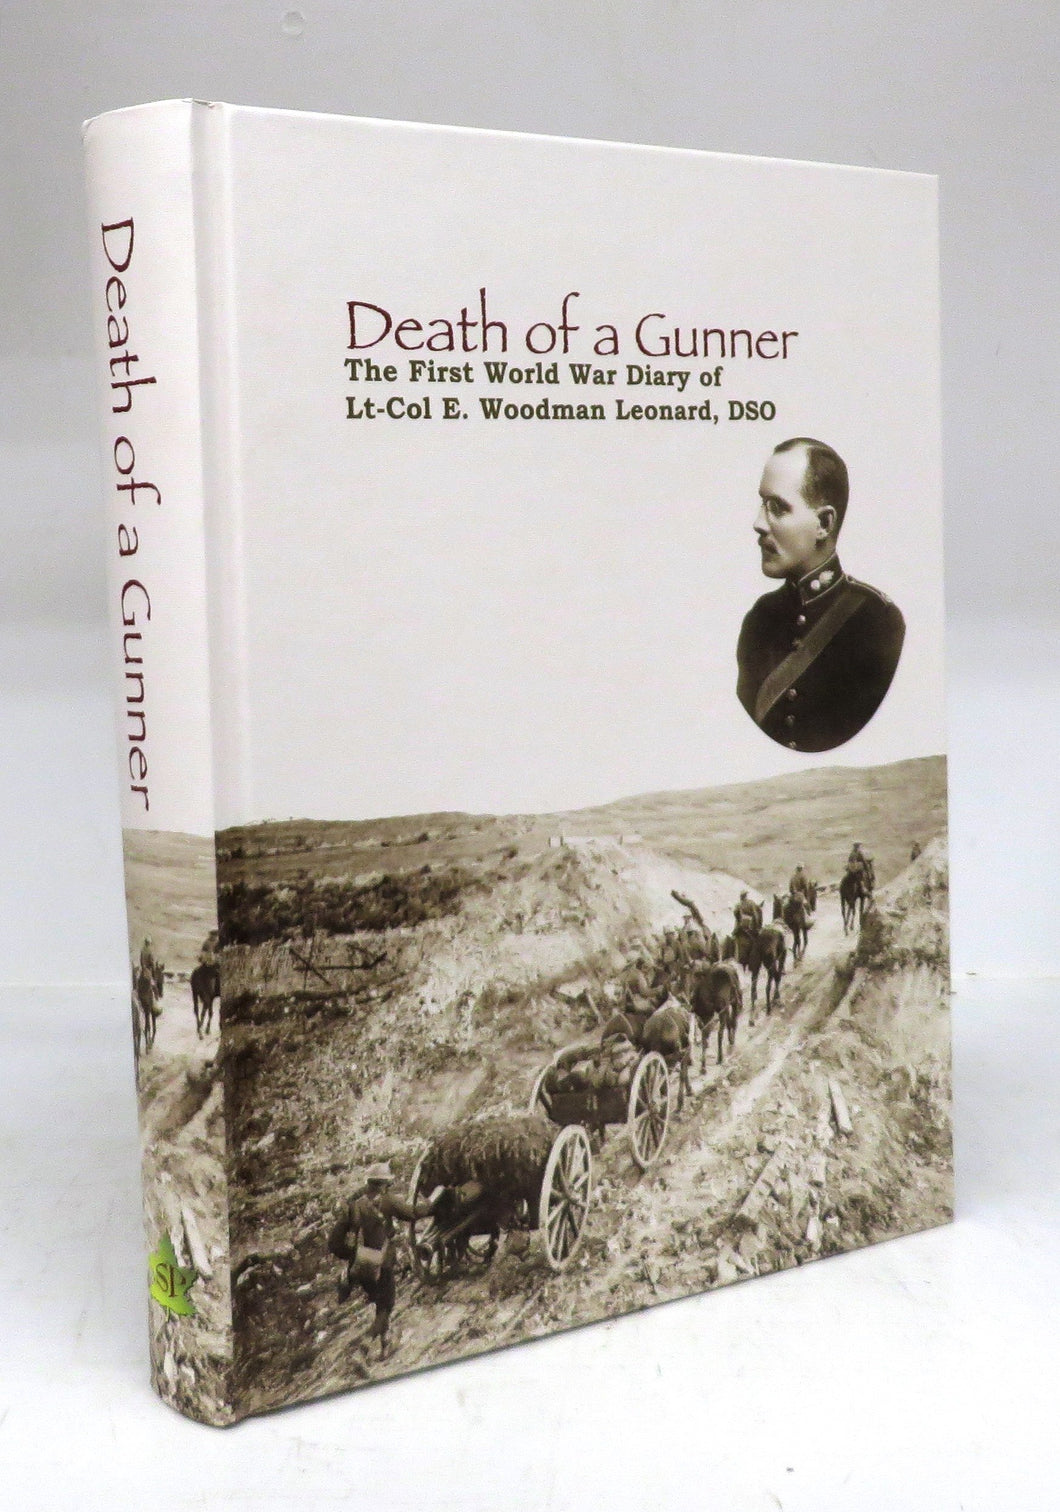 Death of a Gunner: The First World War Diary of Lt. Col. E. Woodman Leonard, DSO